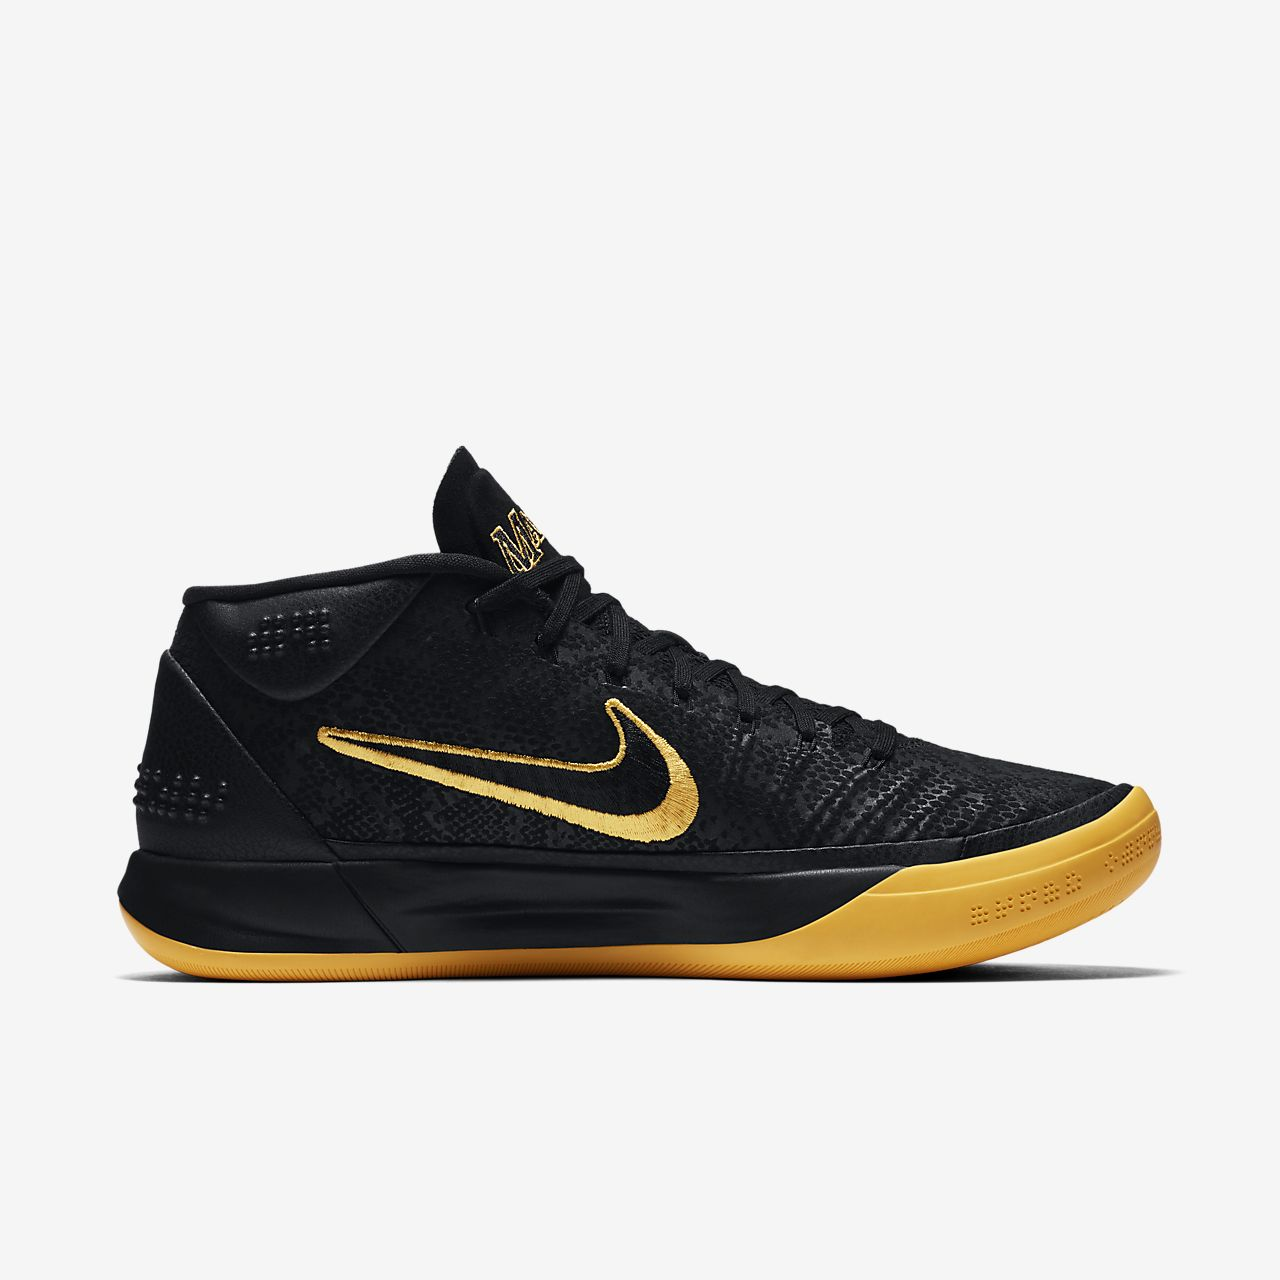 check out 9f2c9 1942d ... norway nike kobe a.d. black mamba mens basketball shoe 803bf dfb51